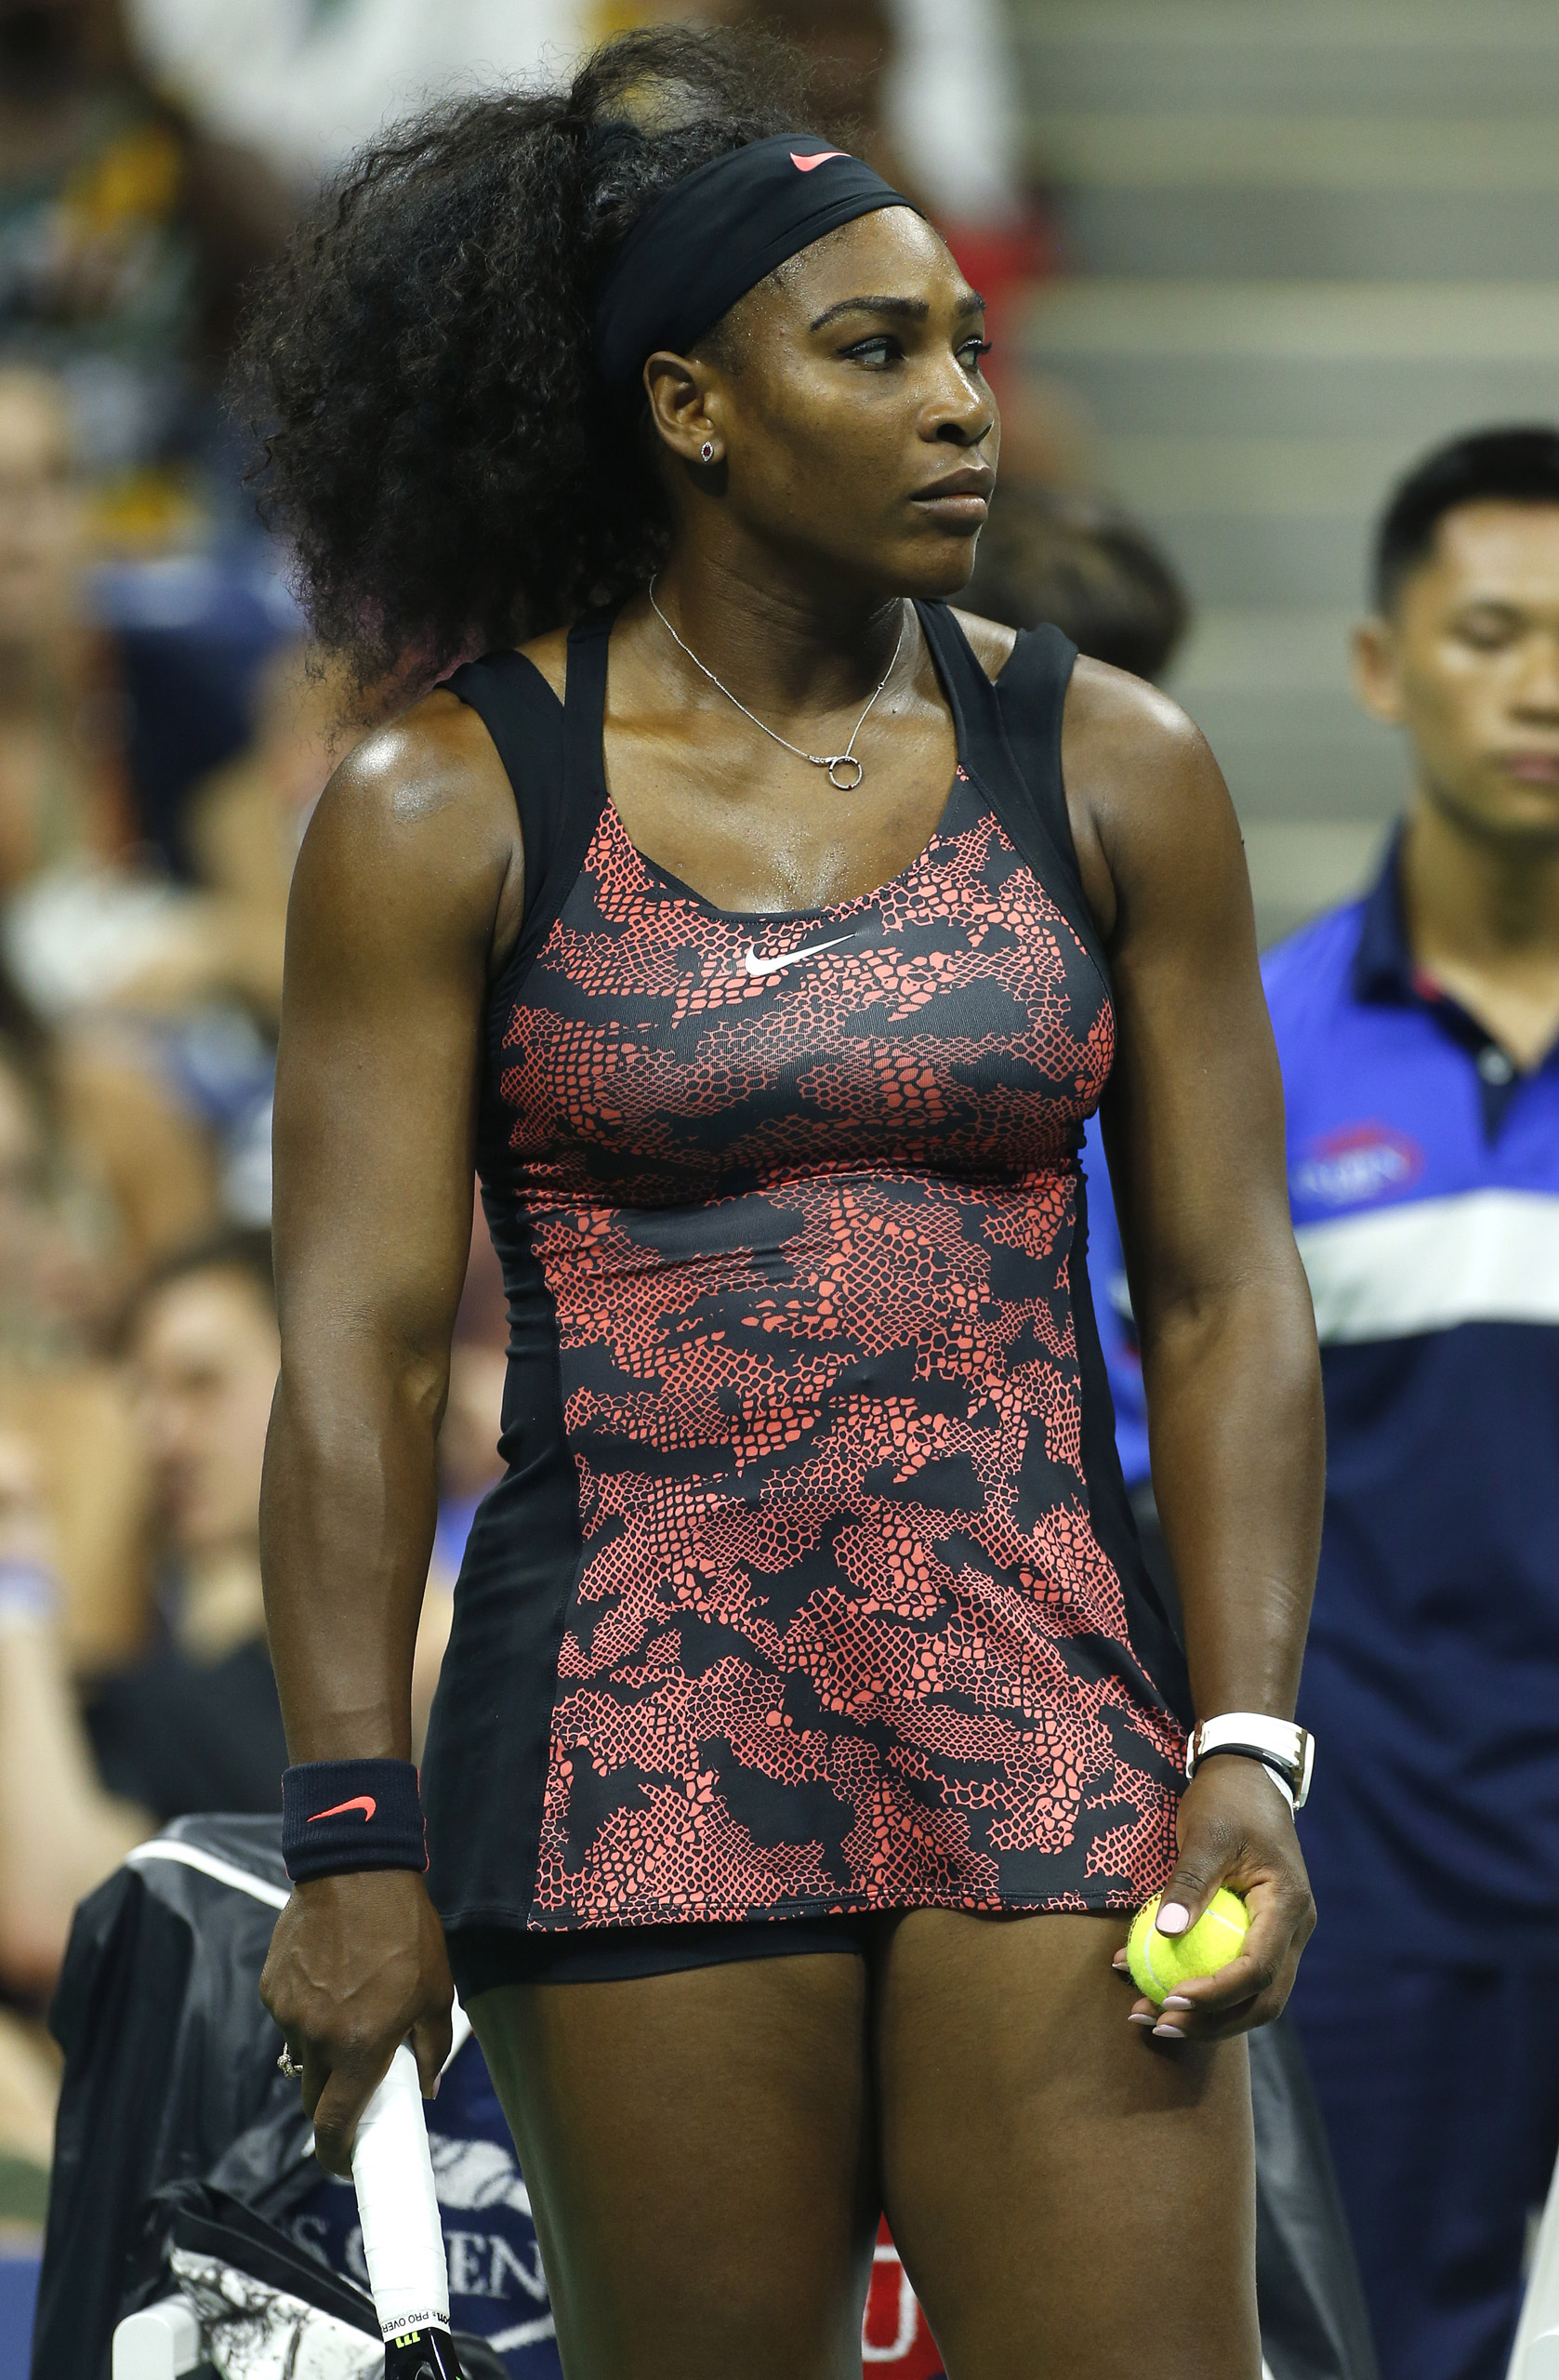 Serena Williams of USA competes on Day 1 of the 2015 US Open in New York on Aug. 31, 2015.